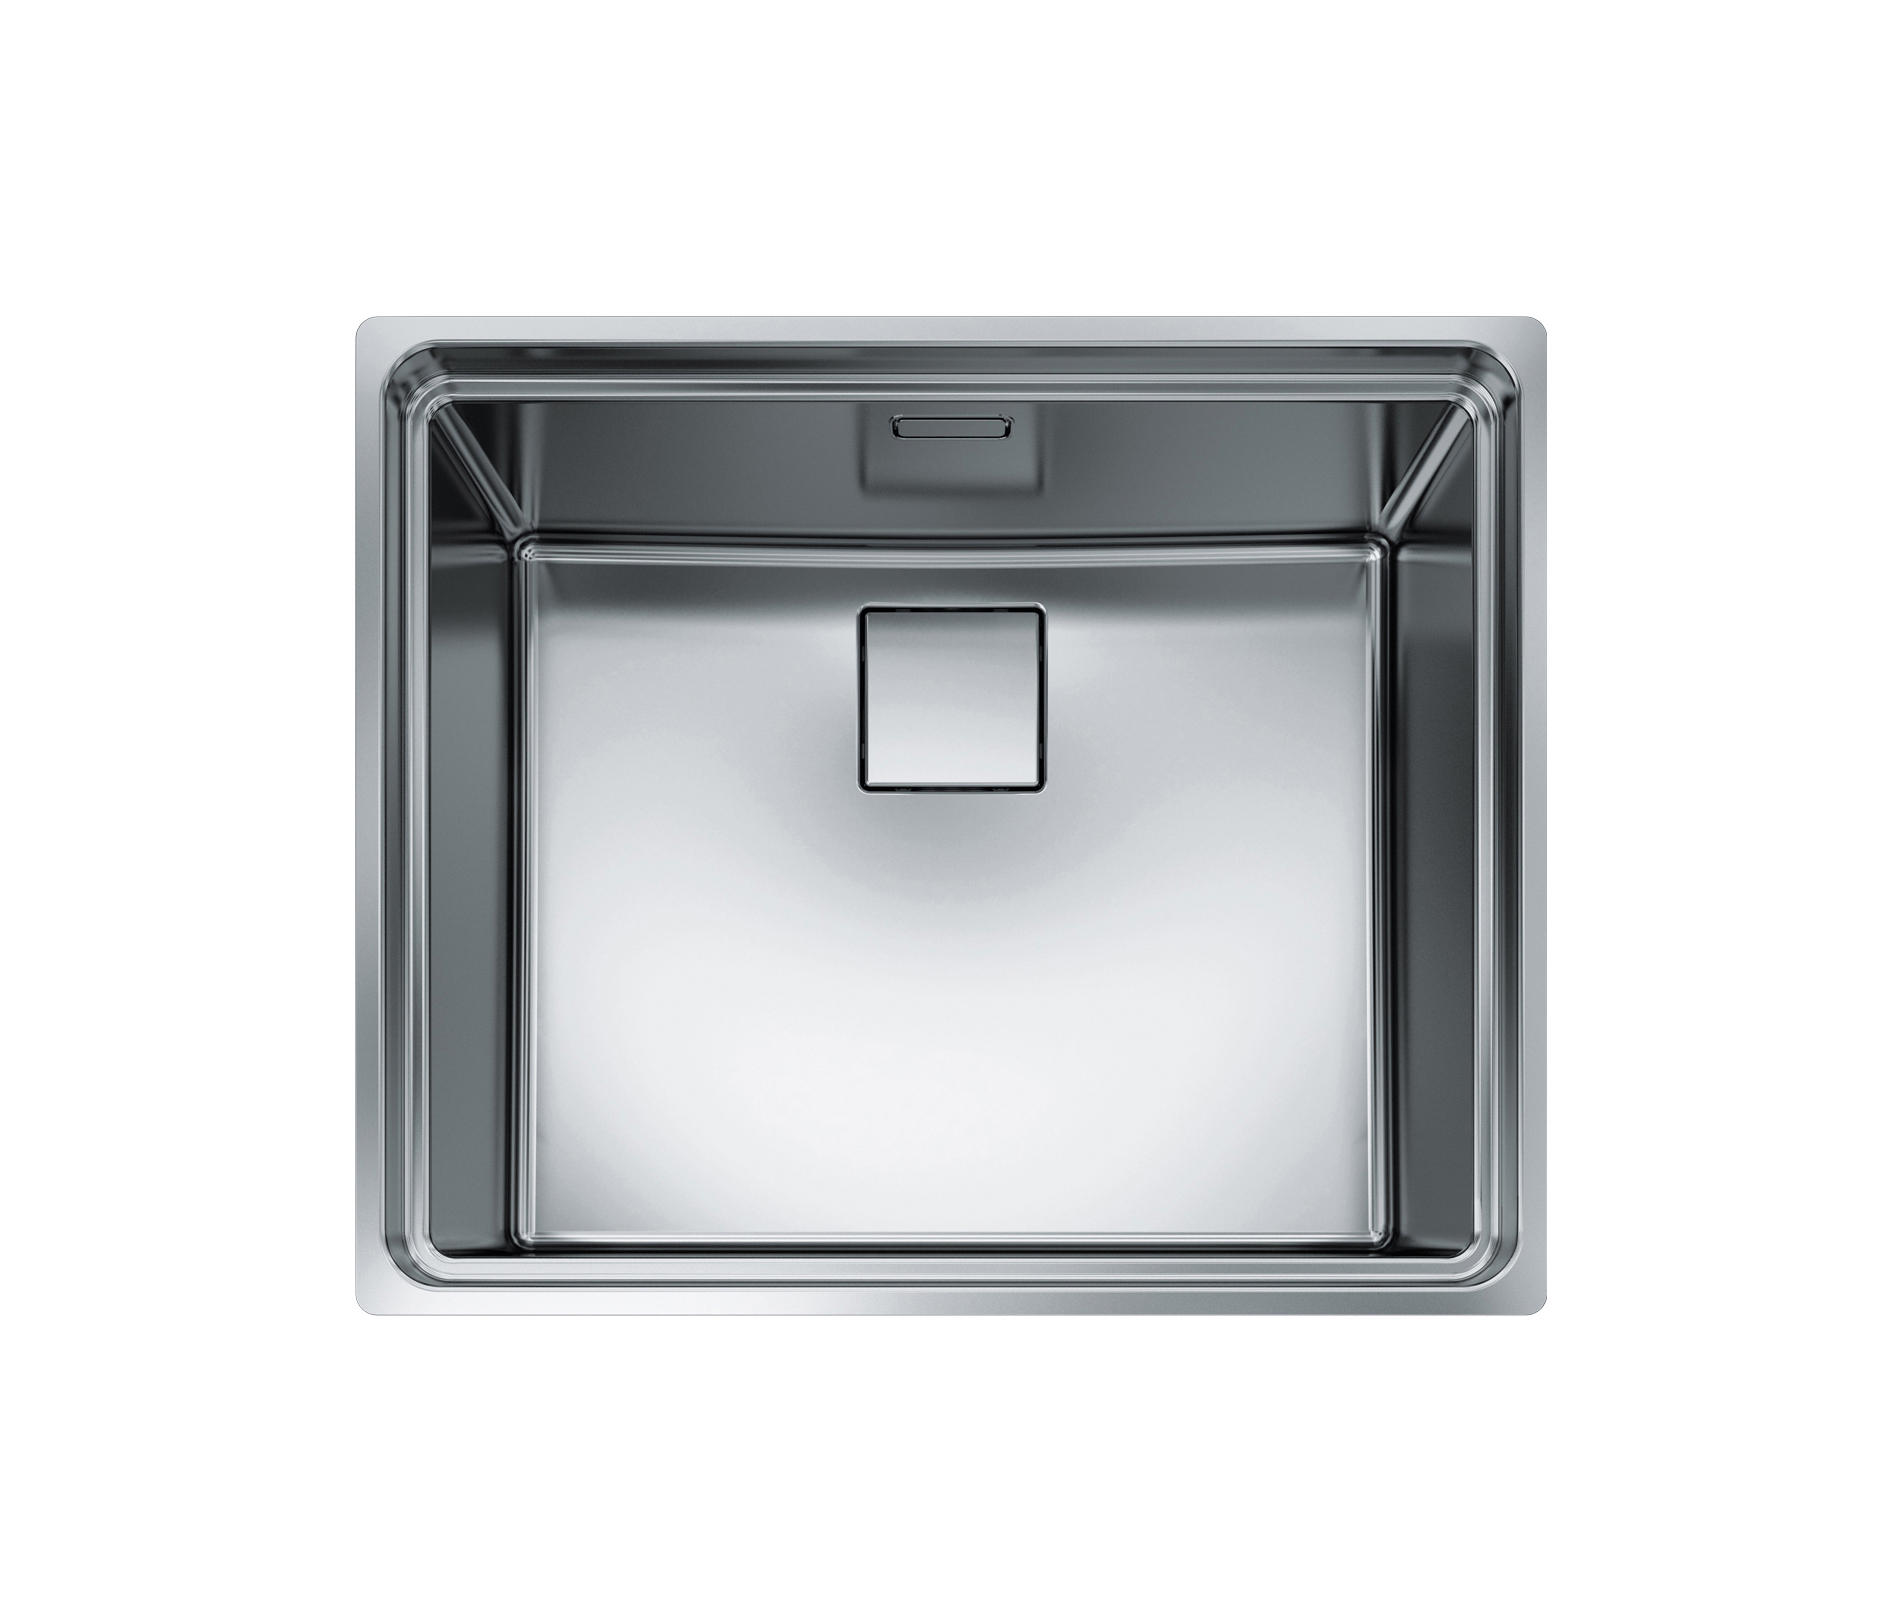 Franke Lavelli Inox Centinox Sink Cmx 210 50 Stainless Steel Kitchen Sinks From